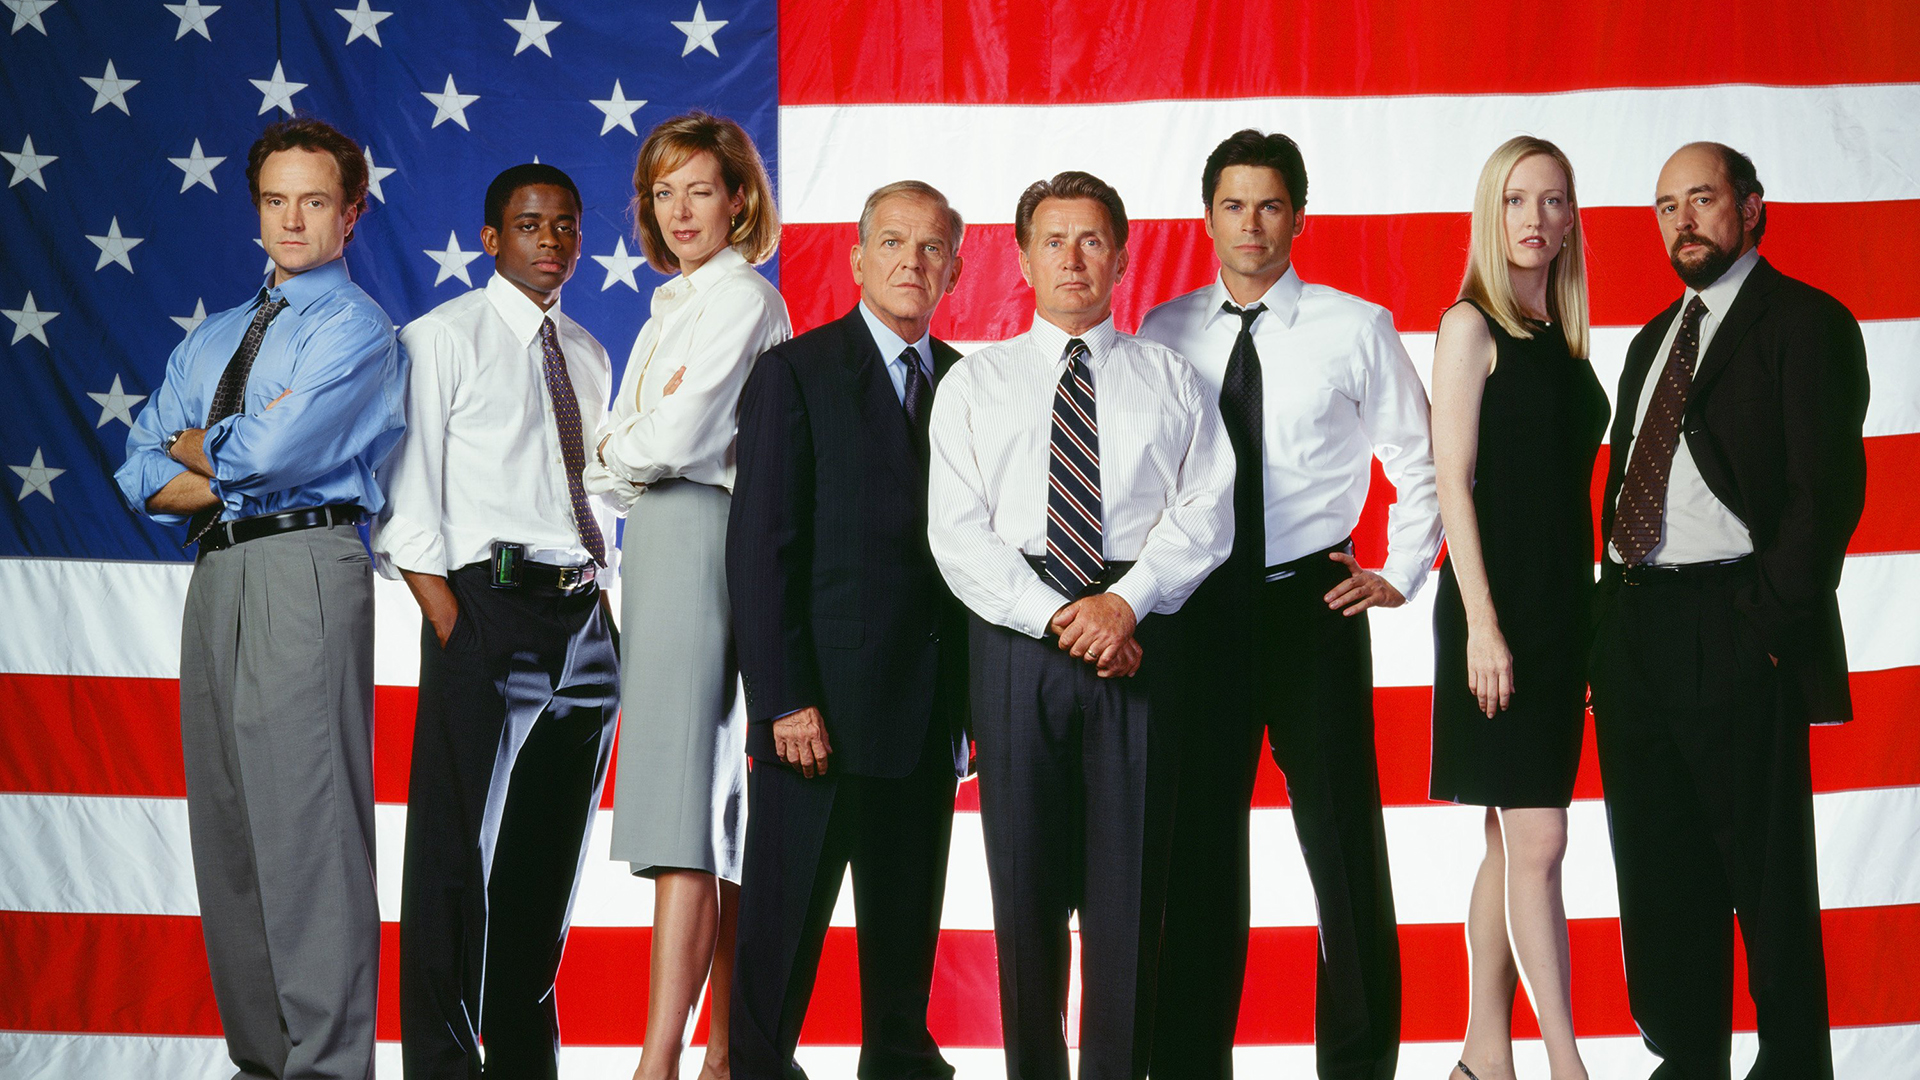 West Wing Star Teases Reboot With Photo Of Mini Reunion